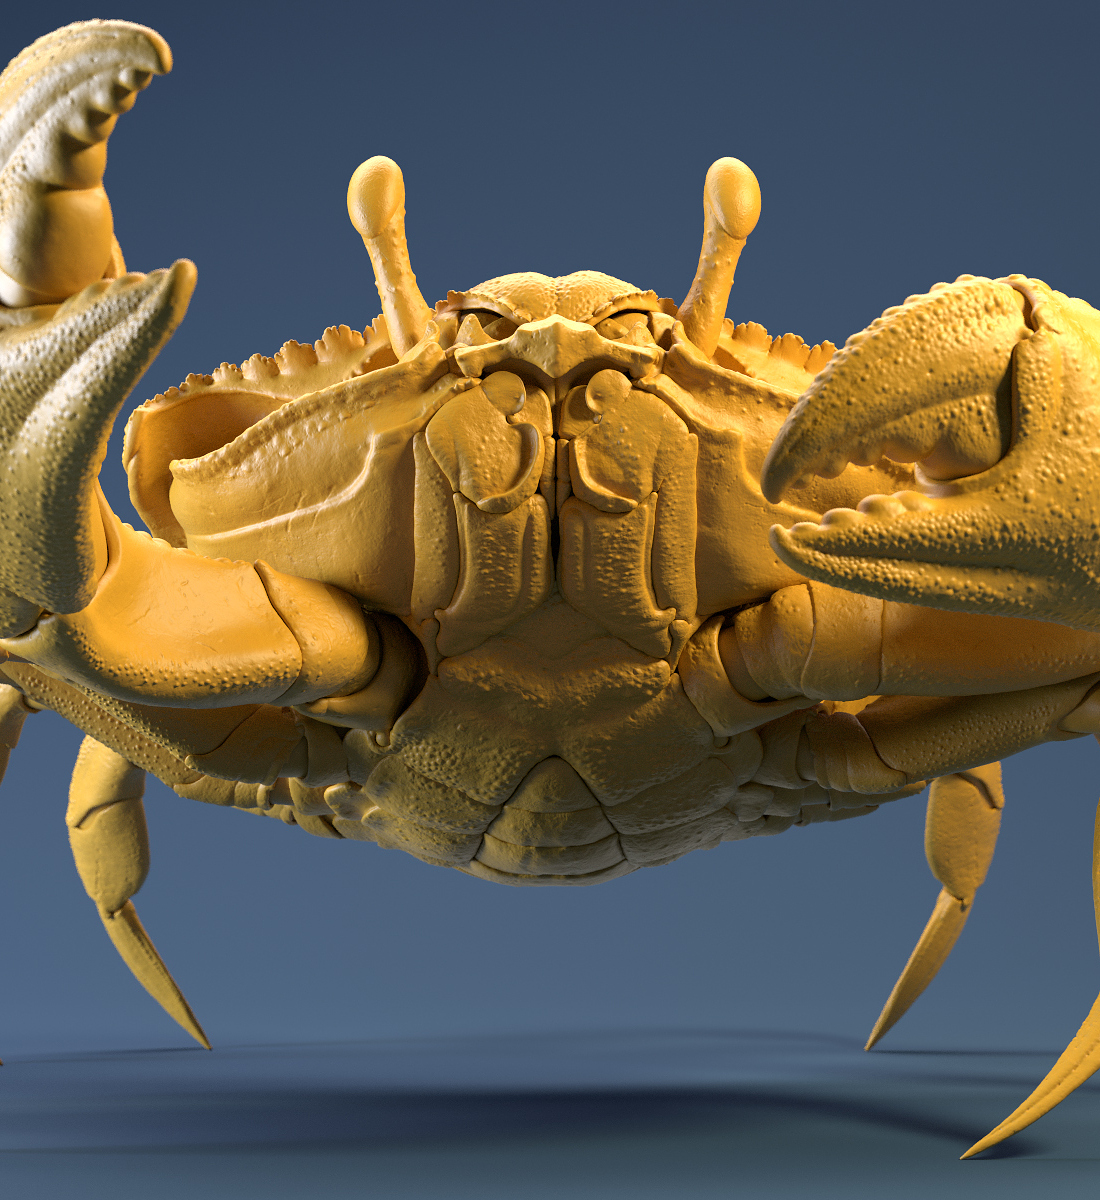 Crab_Yellow_Clay_Shot_02.jpg